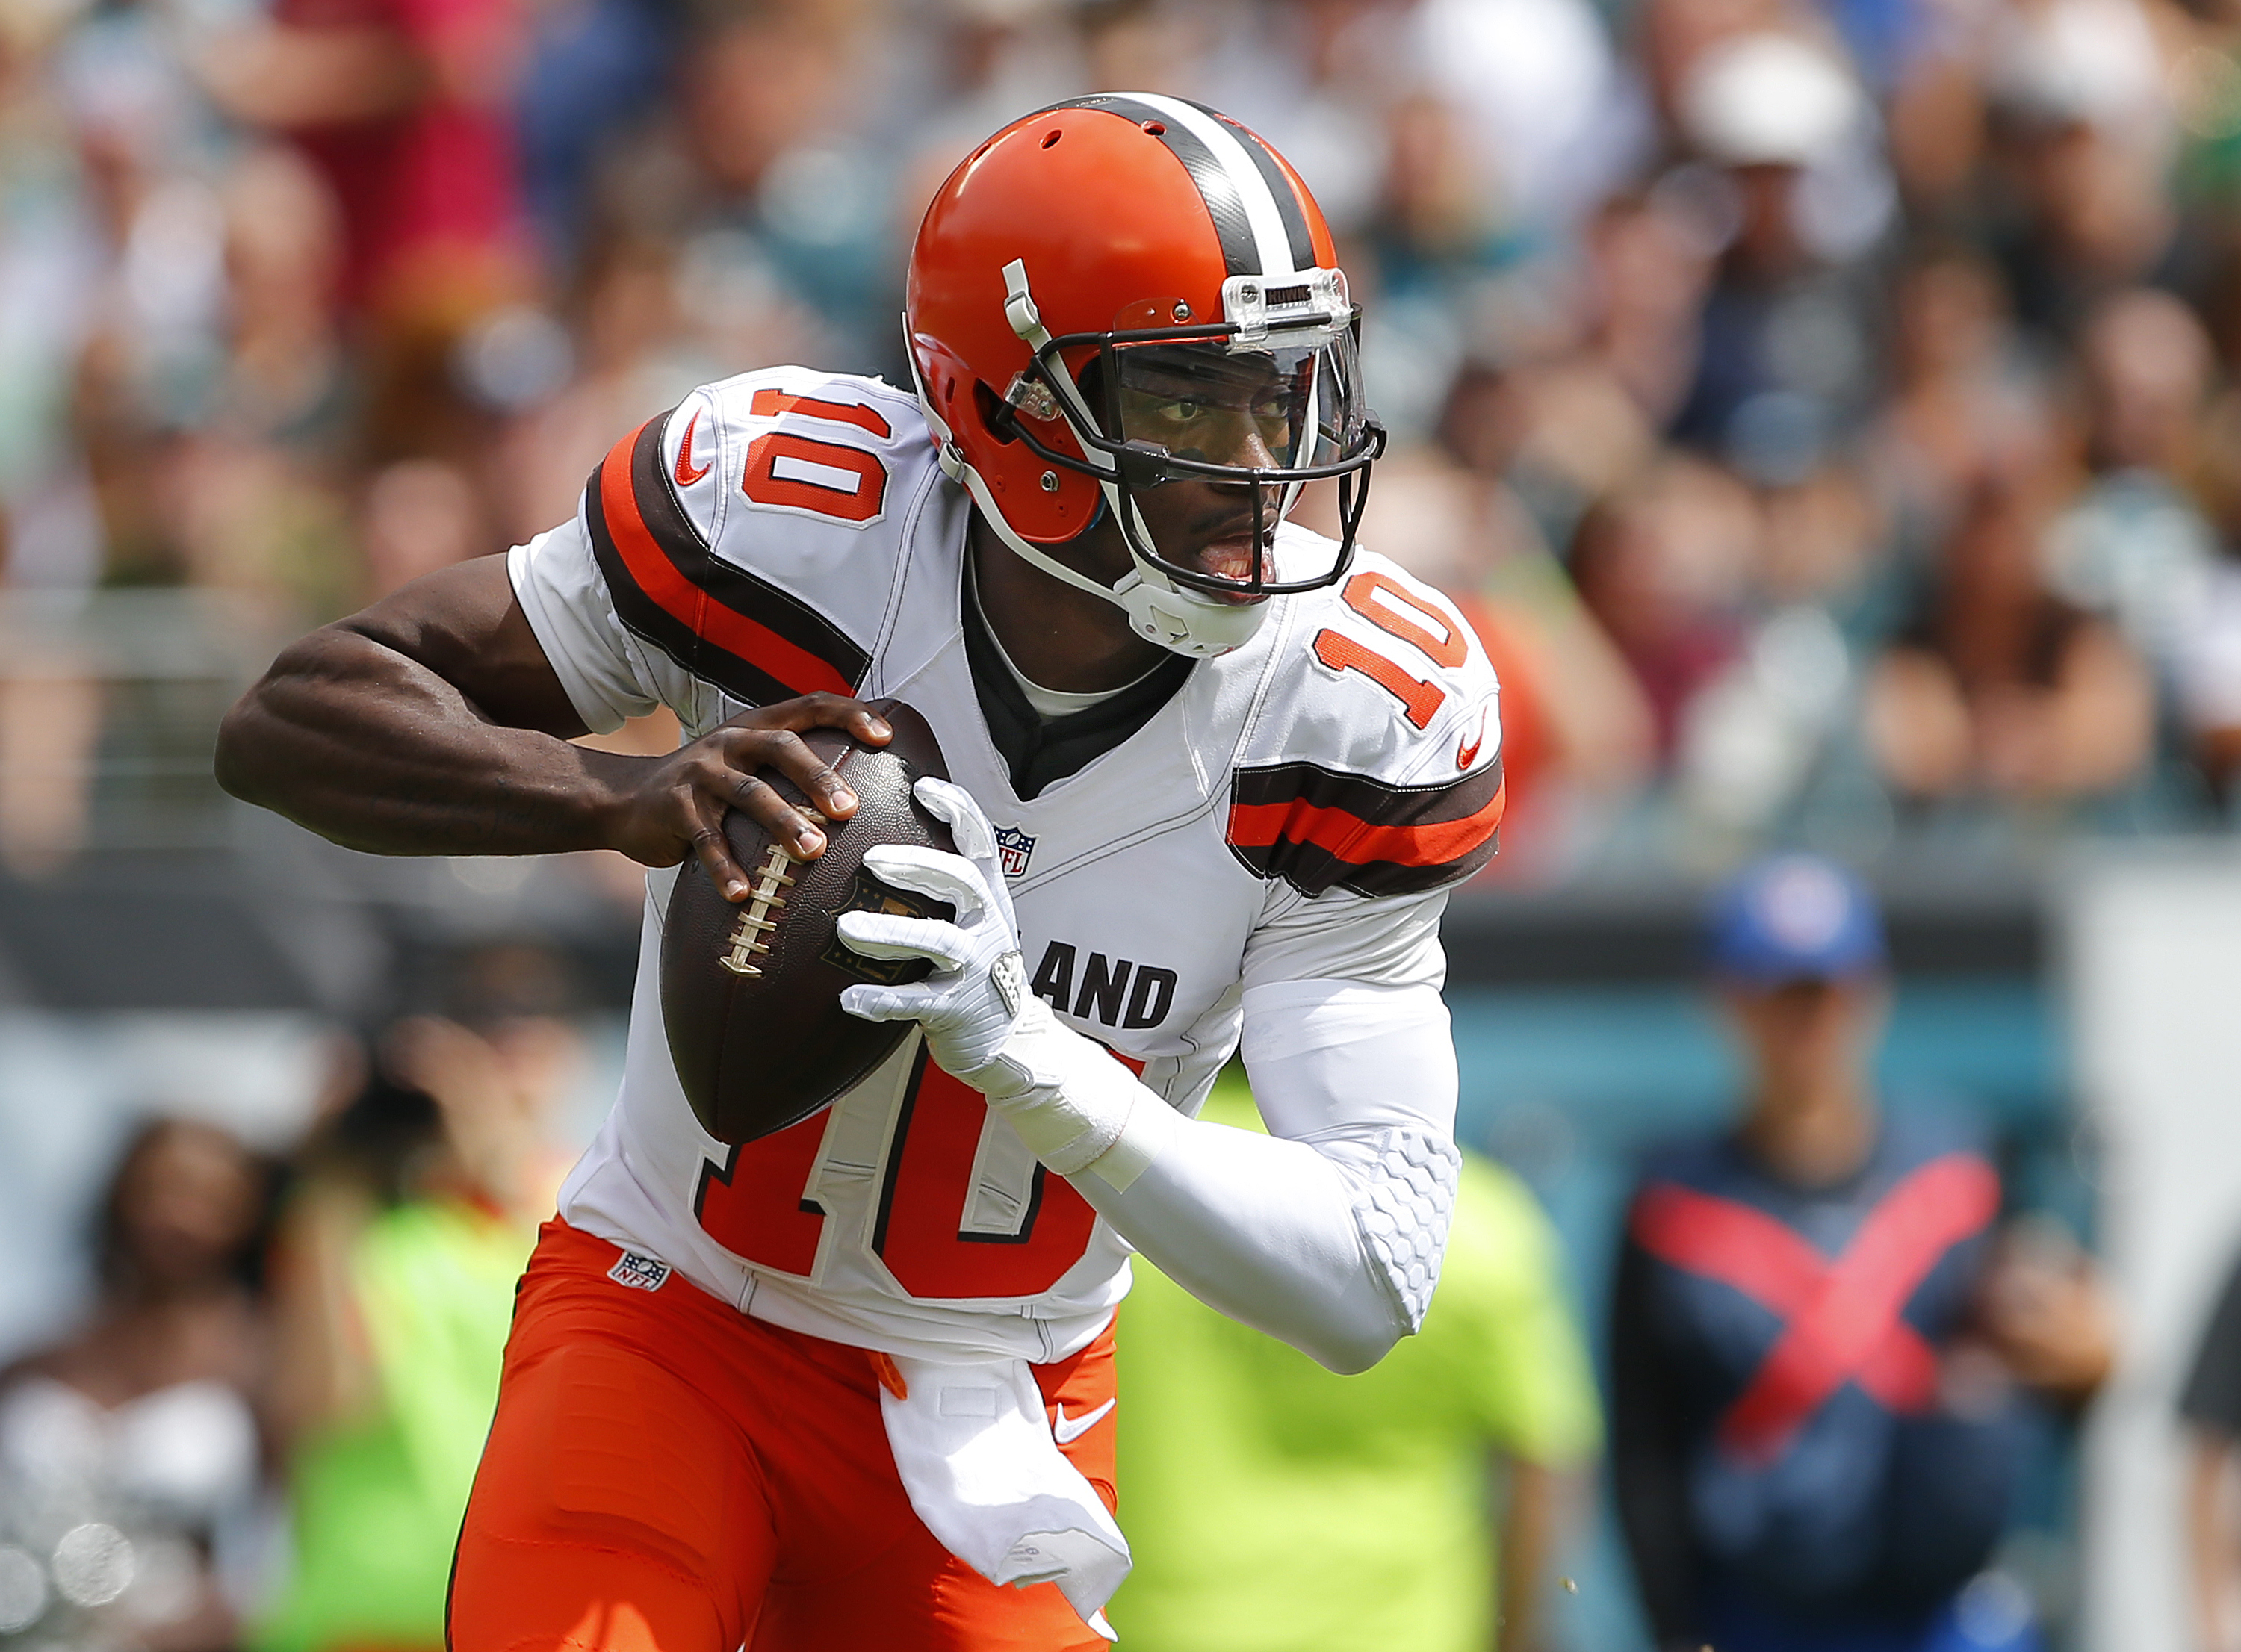 bengals browns live stream, bengals game live stream, browns game live stream, nfl on cbs free stream, online, mobile, xbox one, cbs all access